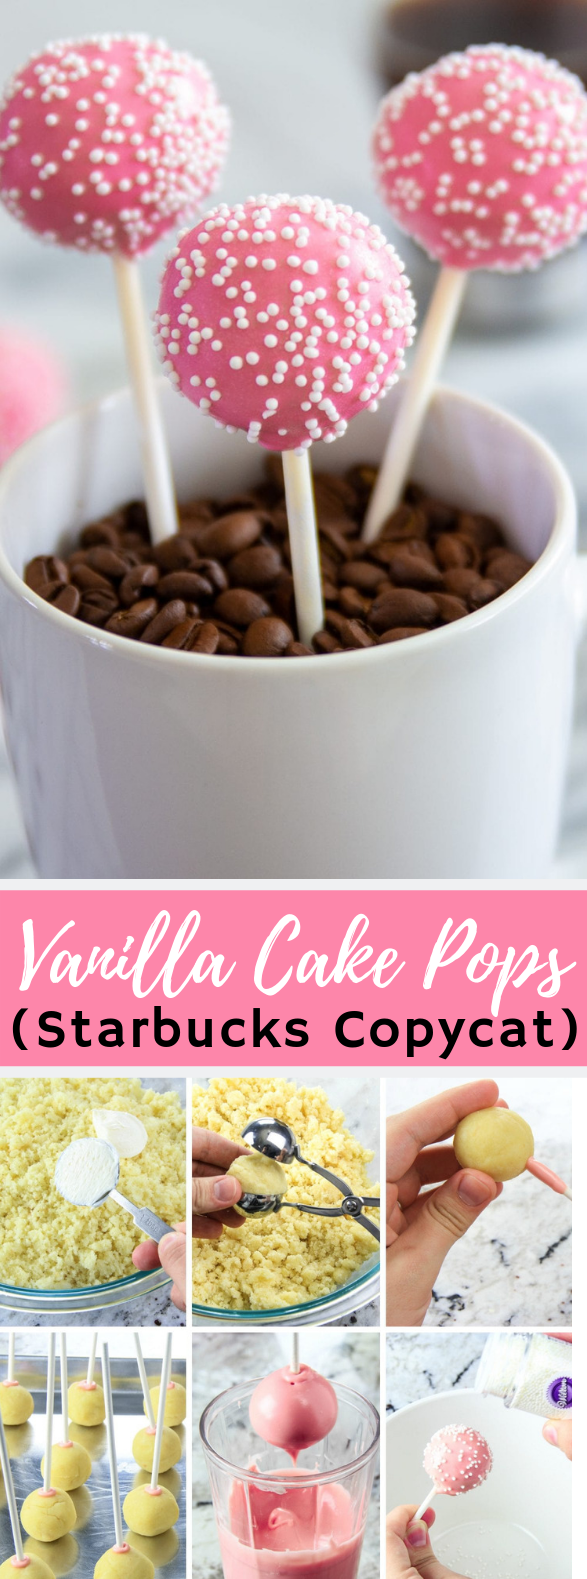 How to Make Cake Pops- Starbucks Copycat #desserts #candy